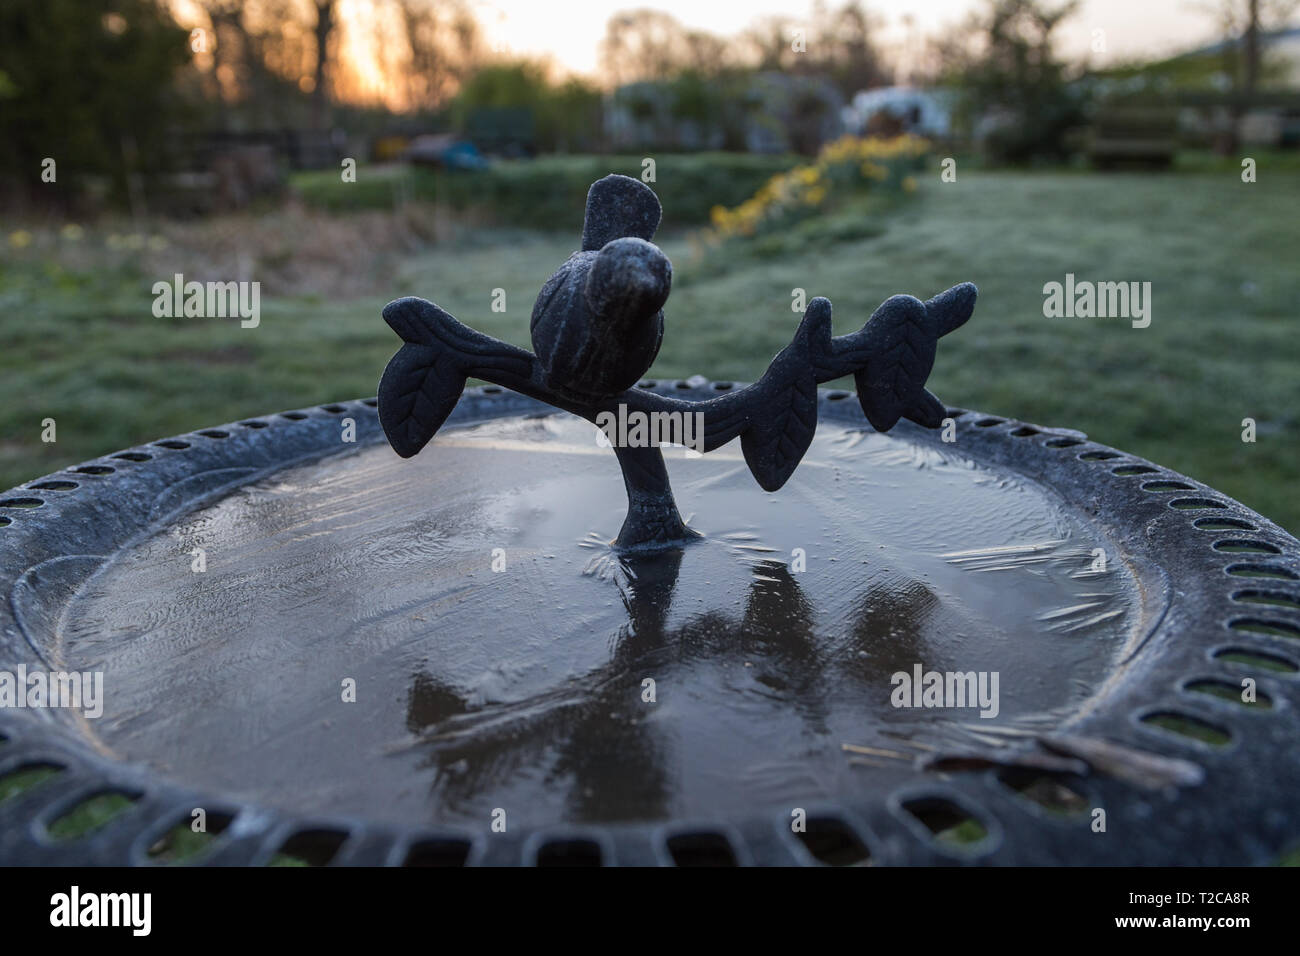 Henlow, Bedfordshire, UK. 1st Apr, 2019. A cold frosty start to the day at Henlow Bridge Lakes campsite in Bedfordshire. Credit: Mick Flynn/Alamy Live News Stock Photo